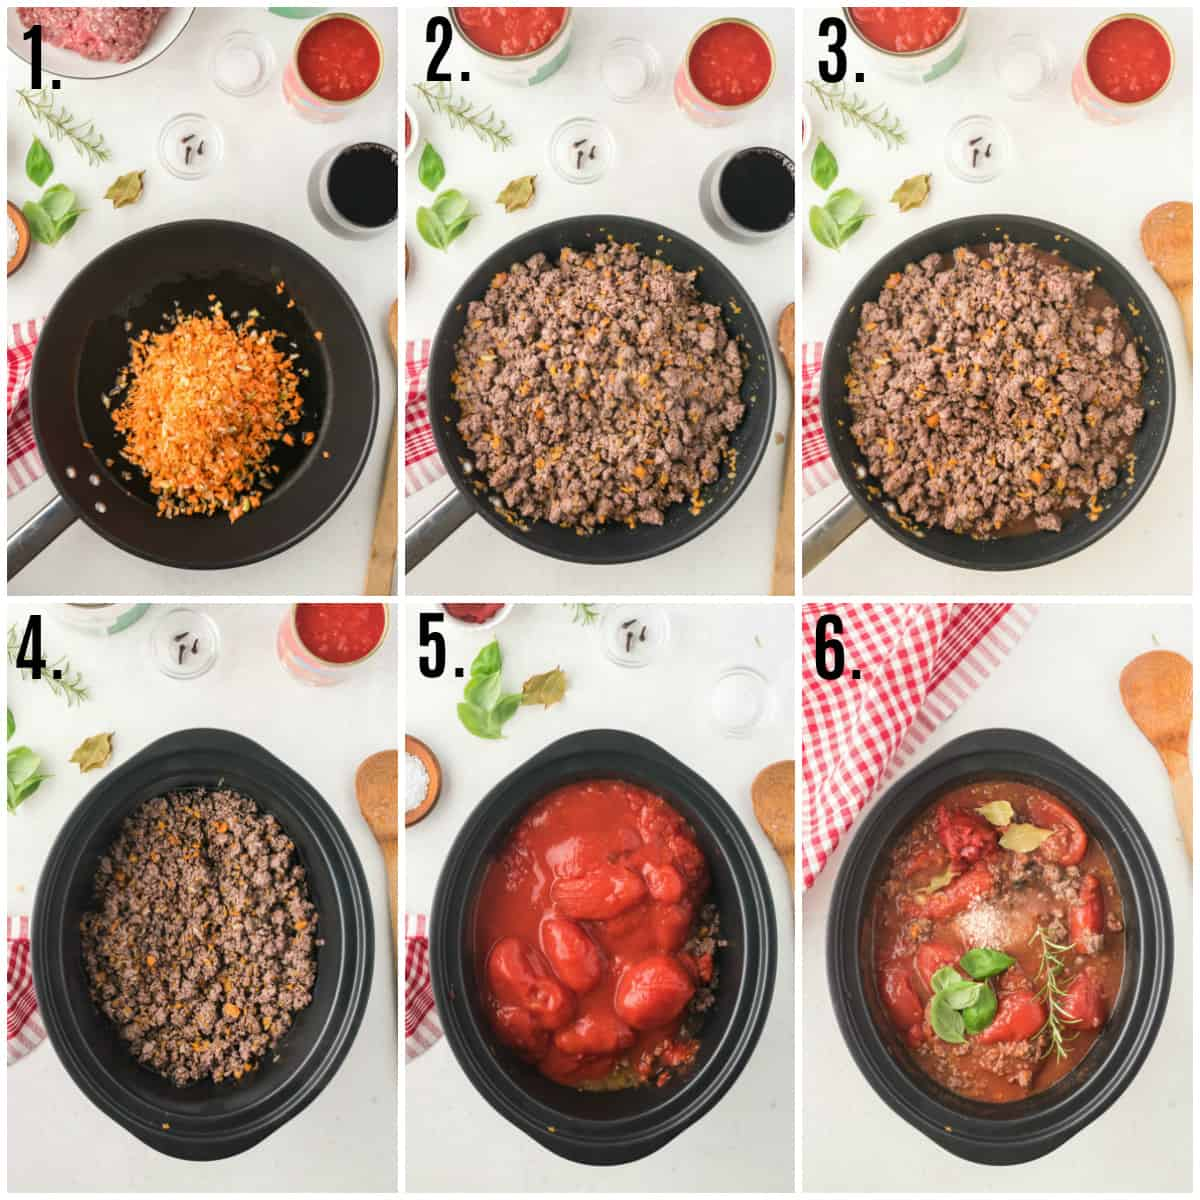 Step by step photos on how to make Slow Cooker Bolognese Sauce